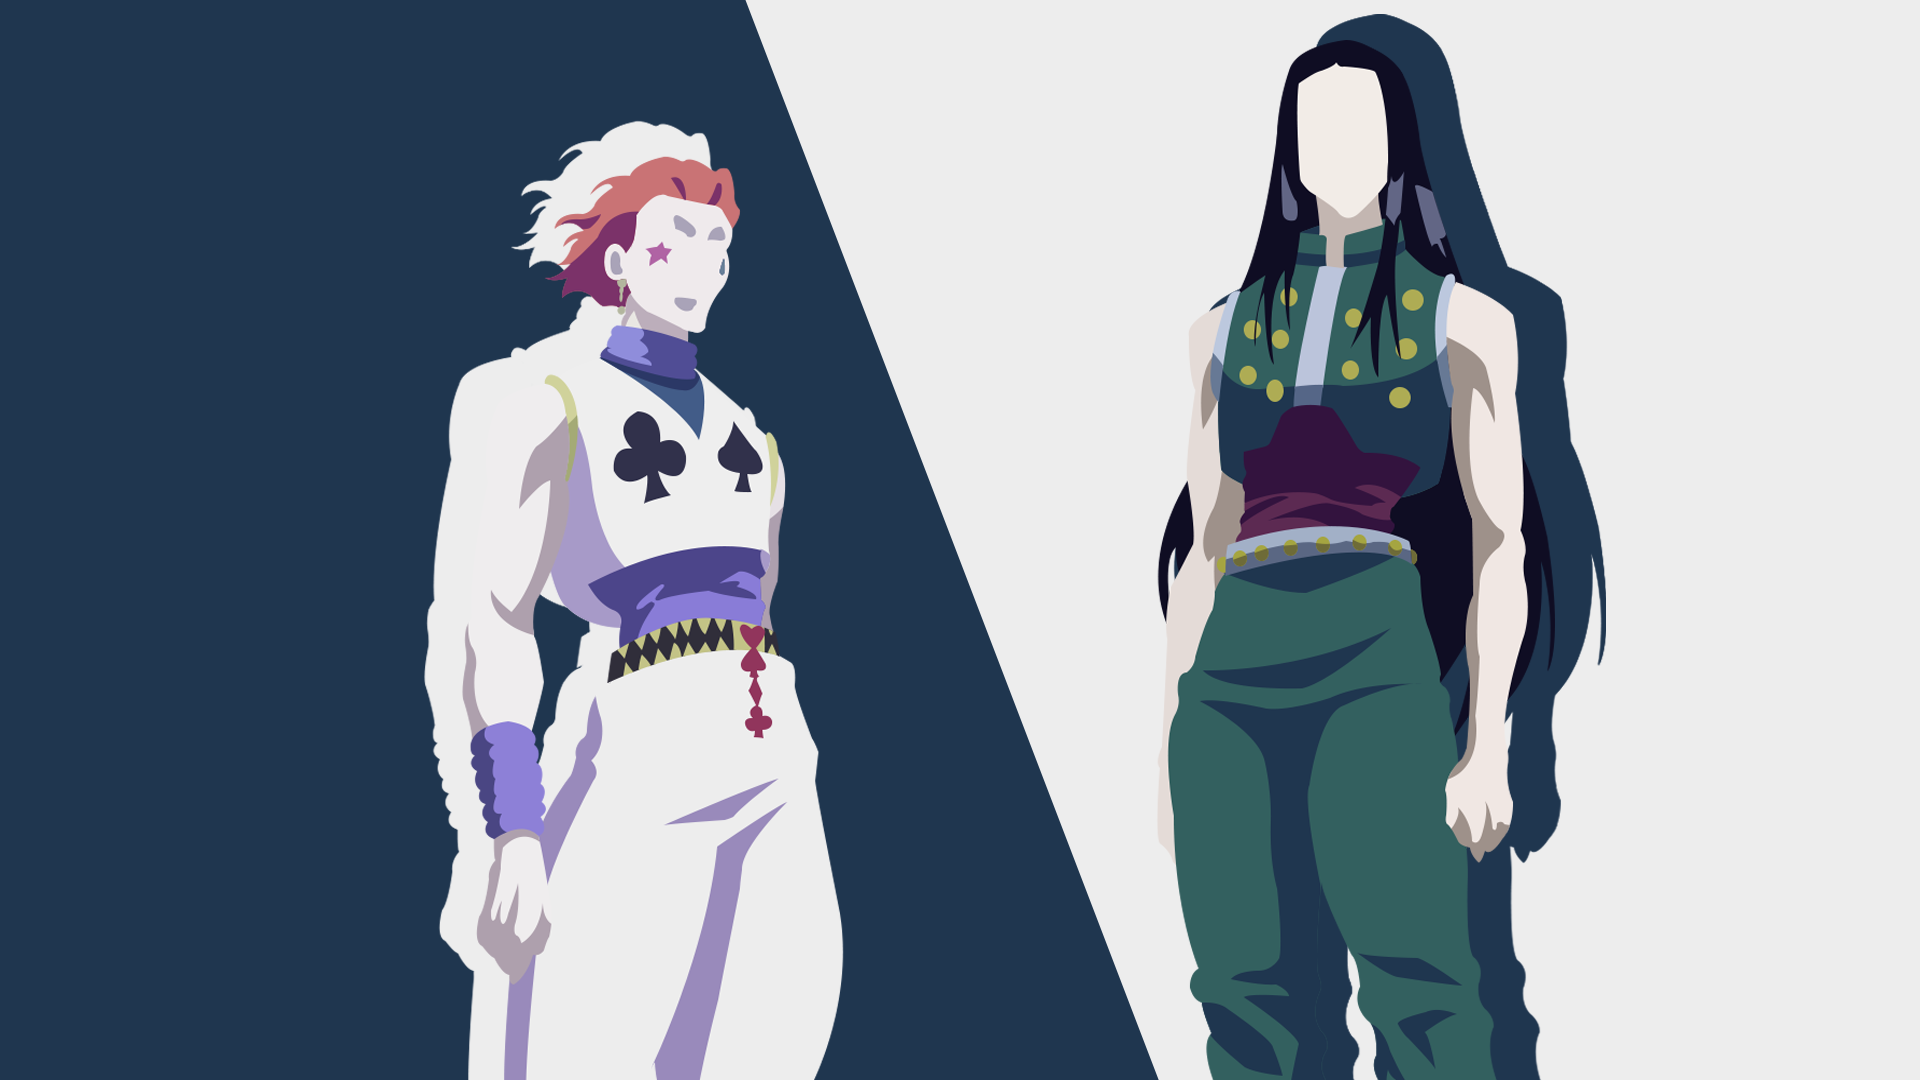 Illumi Zoldyck And Hisoka Morow From Hunter X Hunter